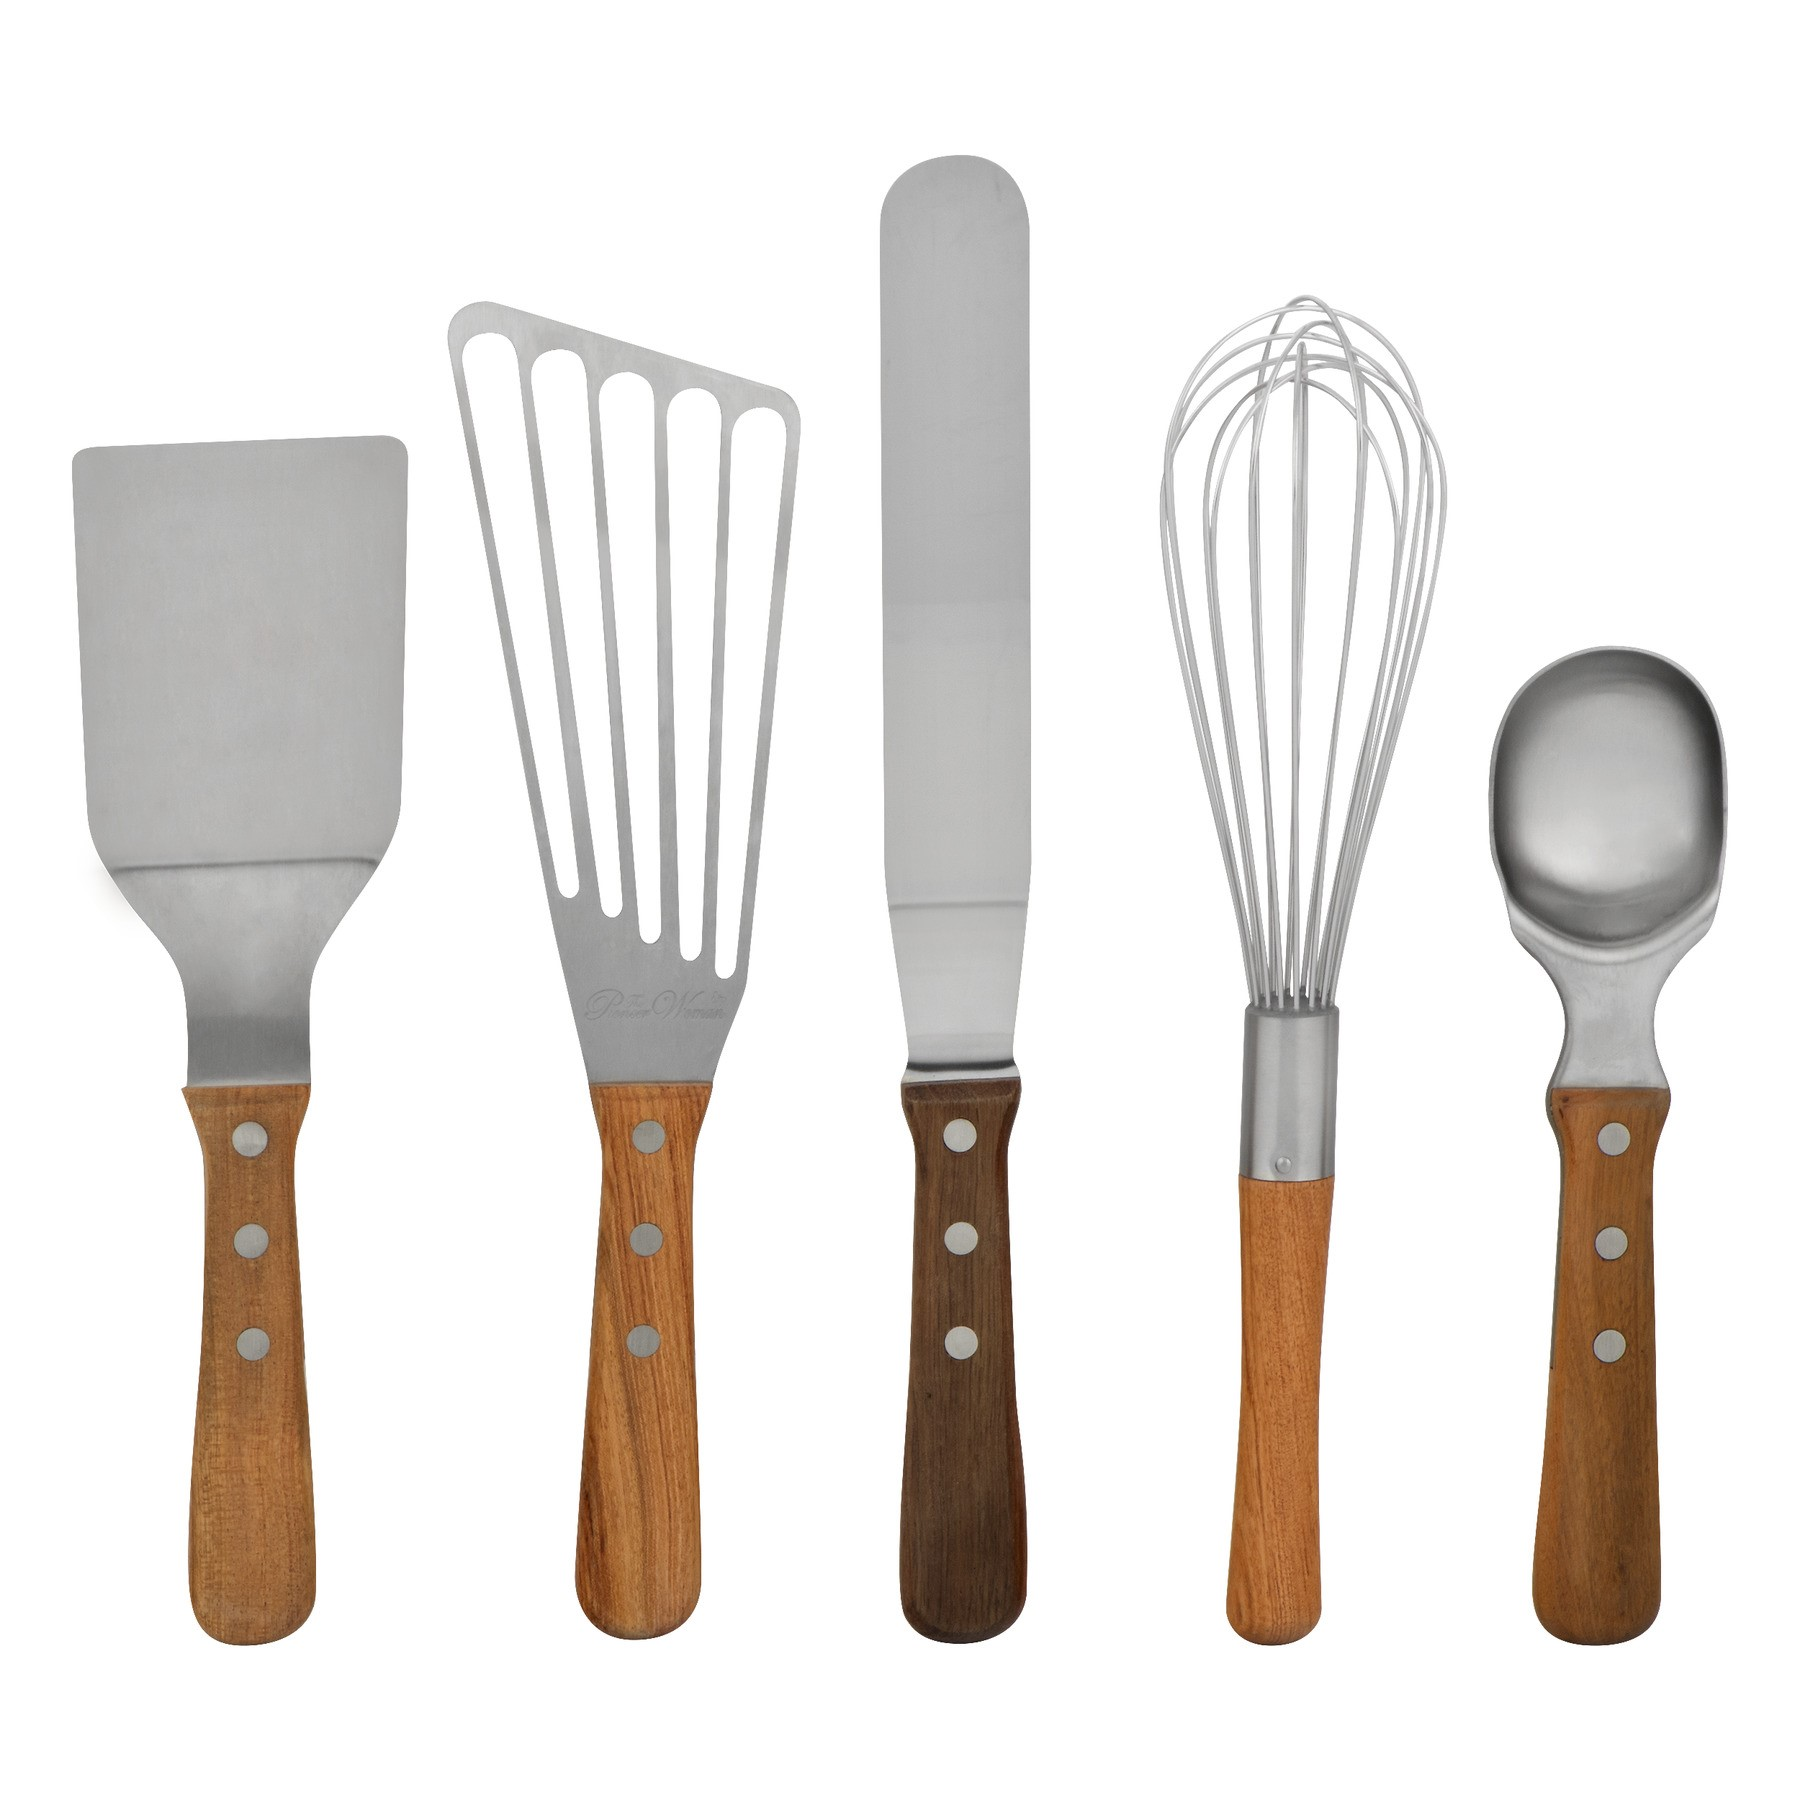 The Pioneer Woman Cowboy Rustic Bakers Essentials - 5 PC, 5.0 PIECE(S)